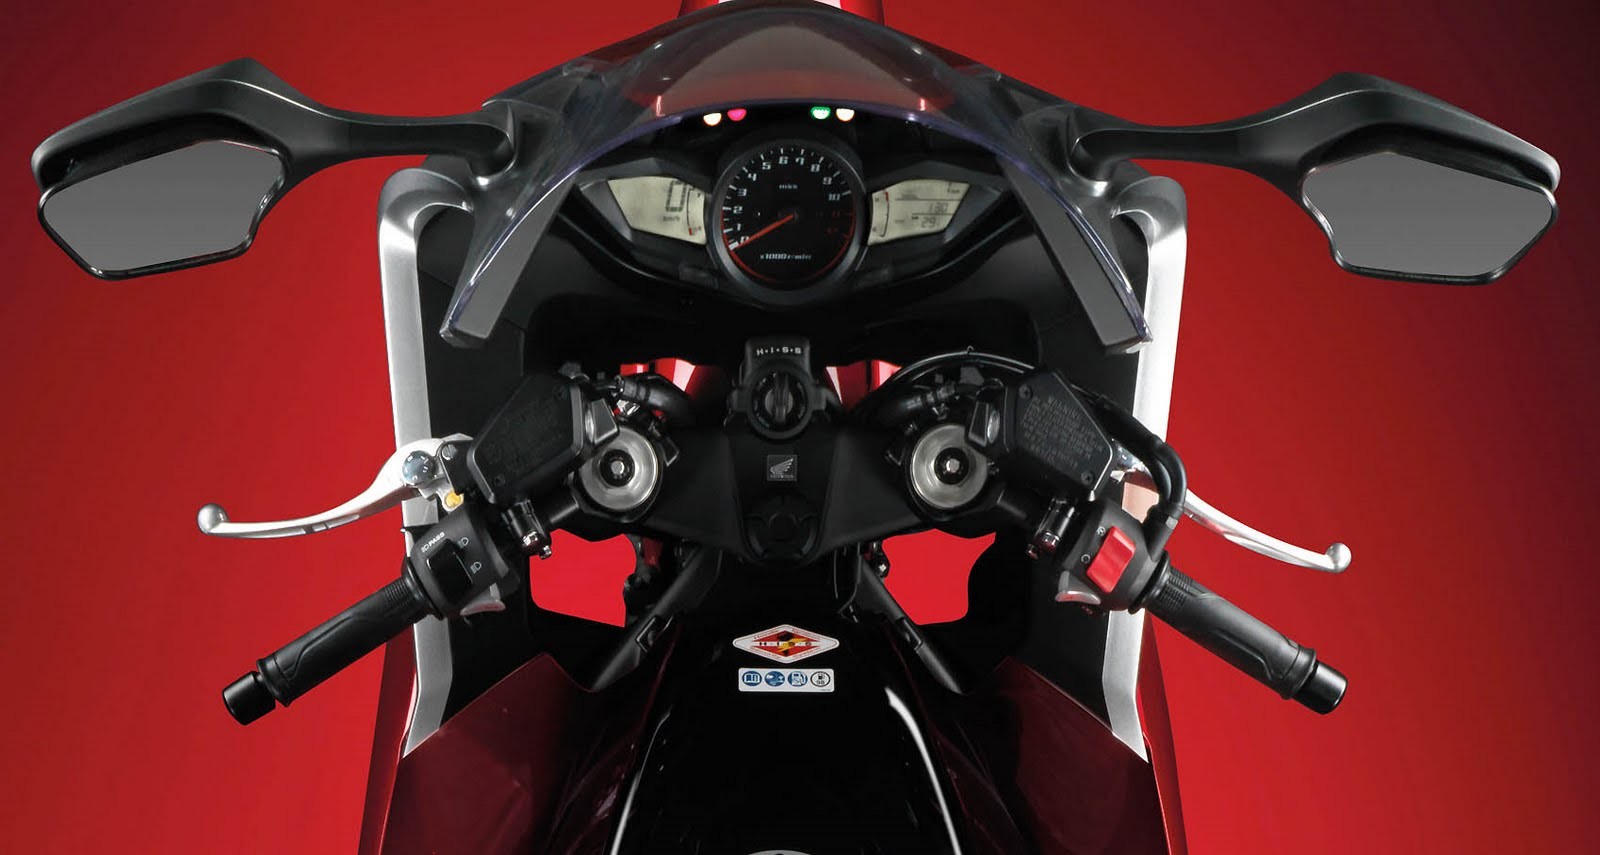 Displayer Big Motorcycle August 2010 All New Cbr 150r Racing Red Banyumas No Wonder If This Moge Prices Can Be More Expensive Than The Honda Jazz